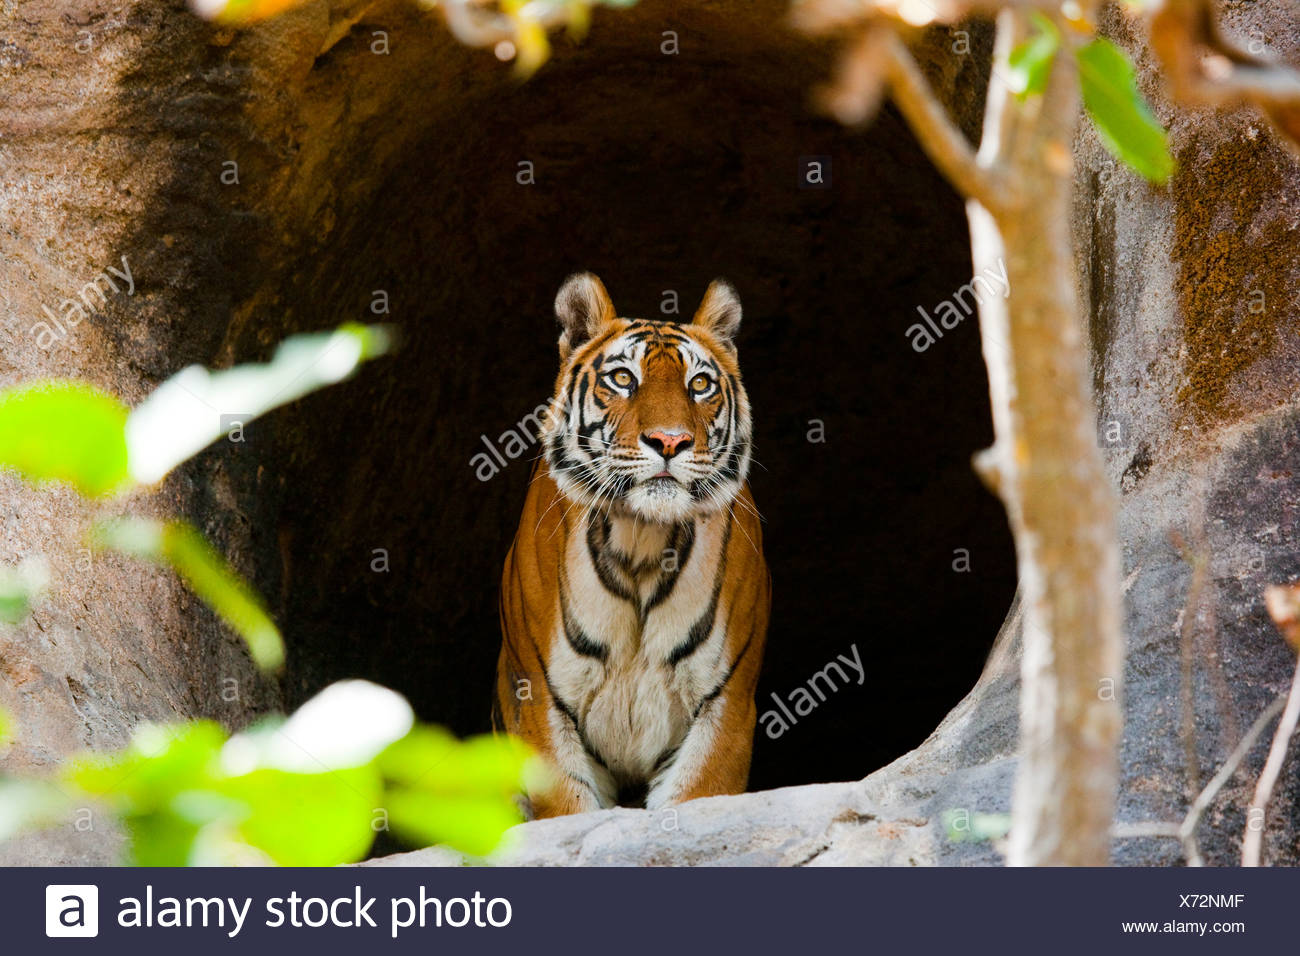 Bengal Tiger, Bandhavgarh National Park, Madhya Pradesh, India - Stock Image